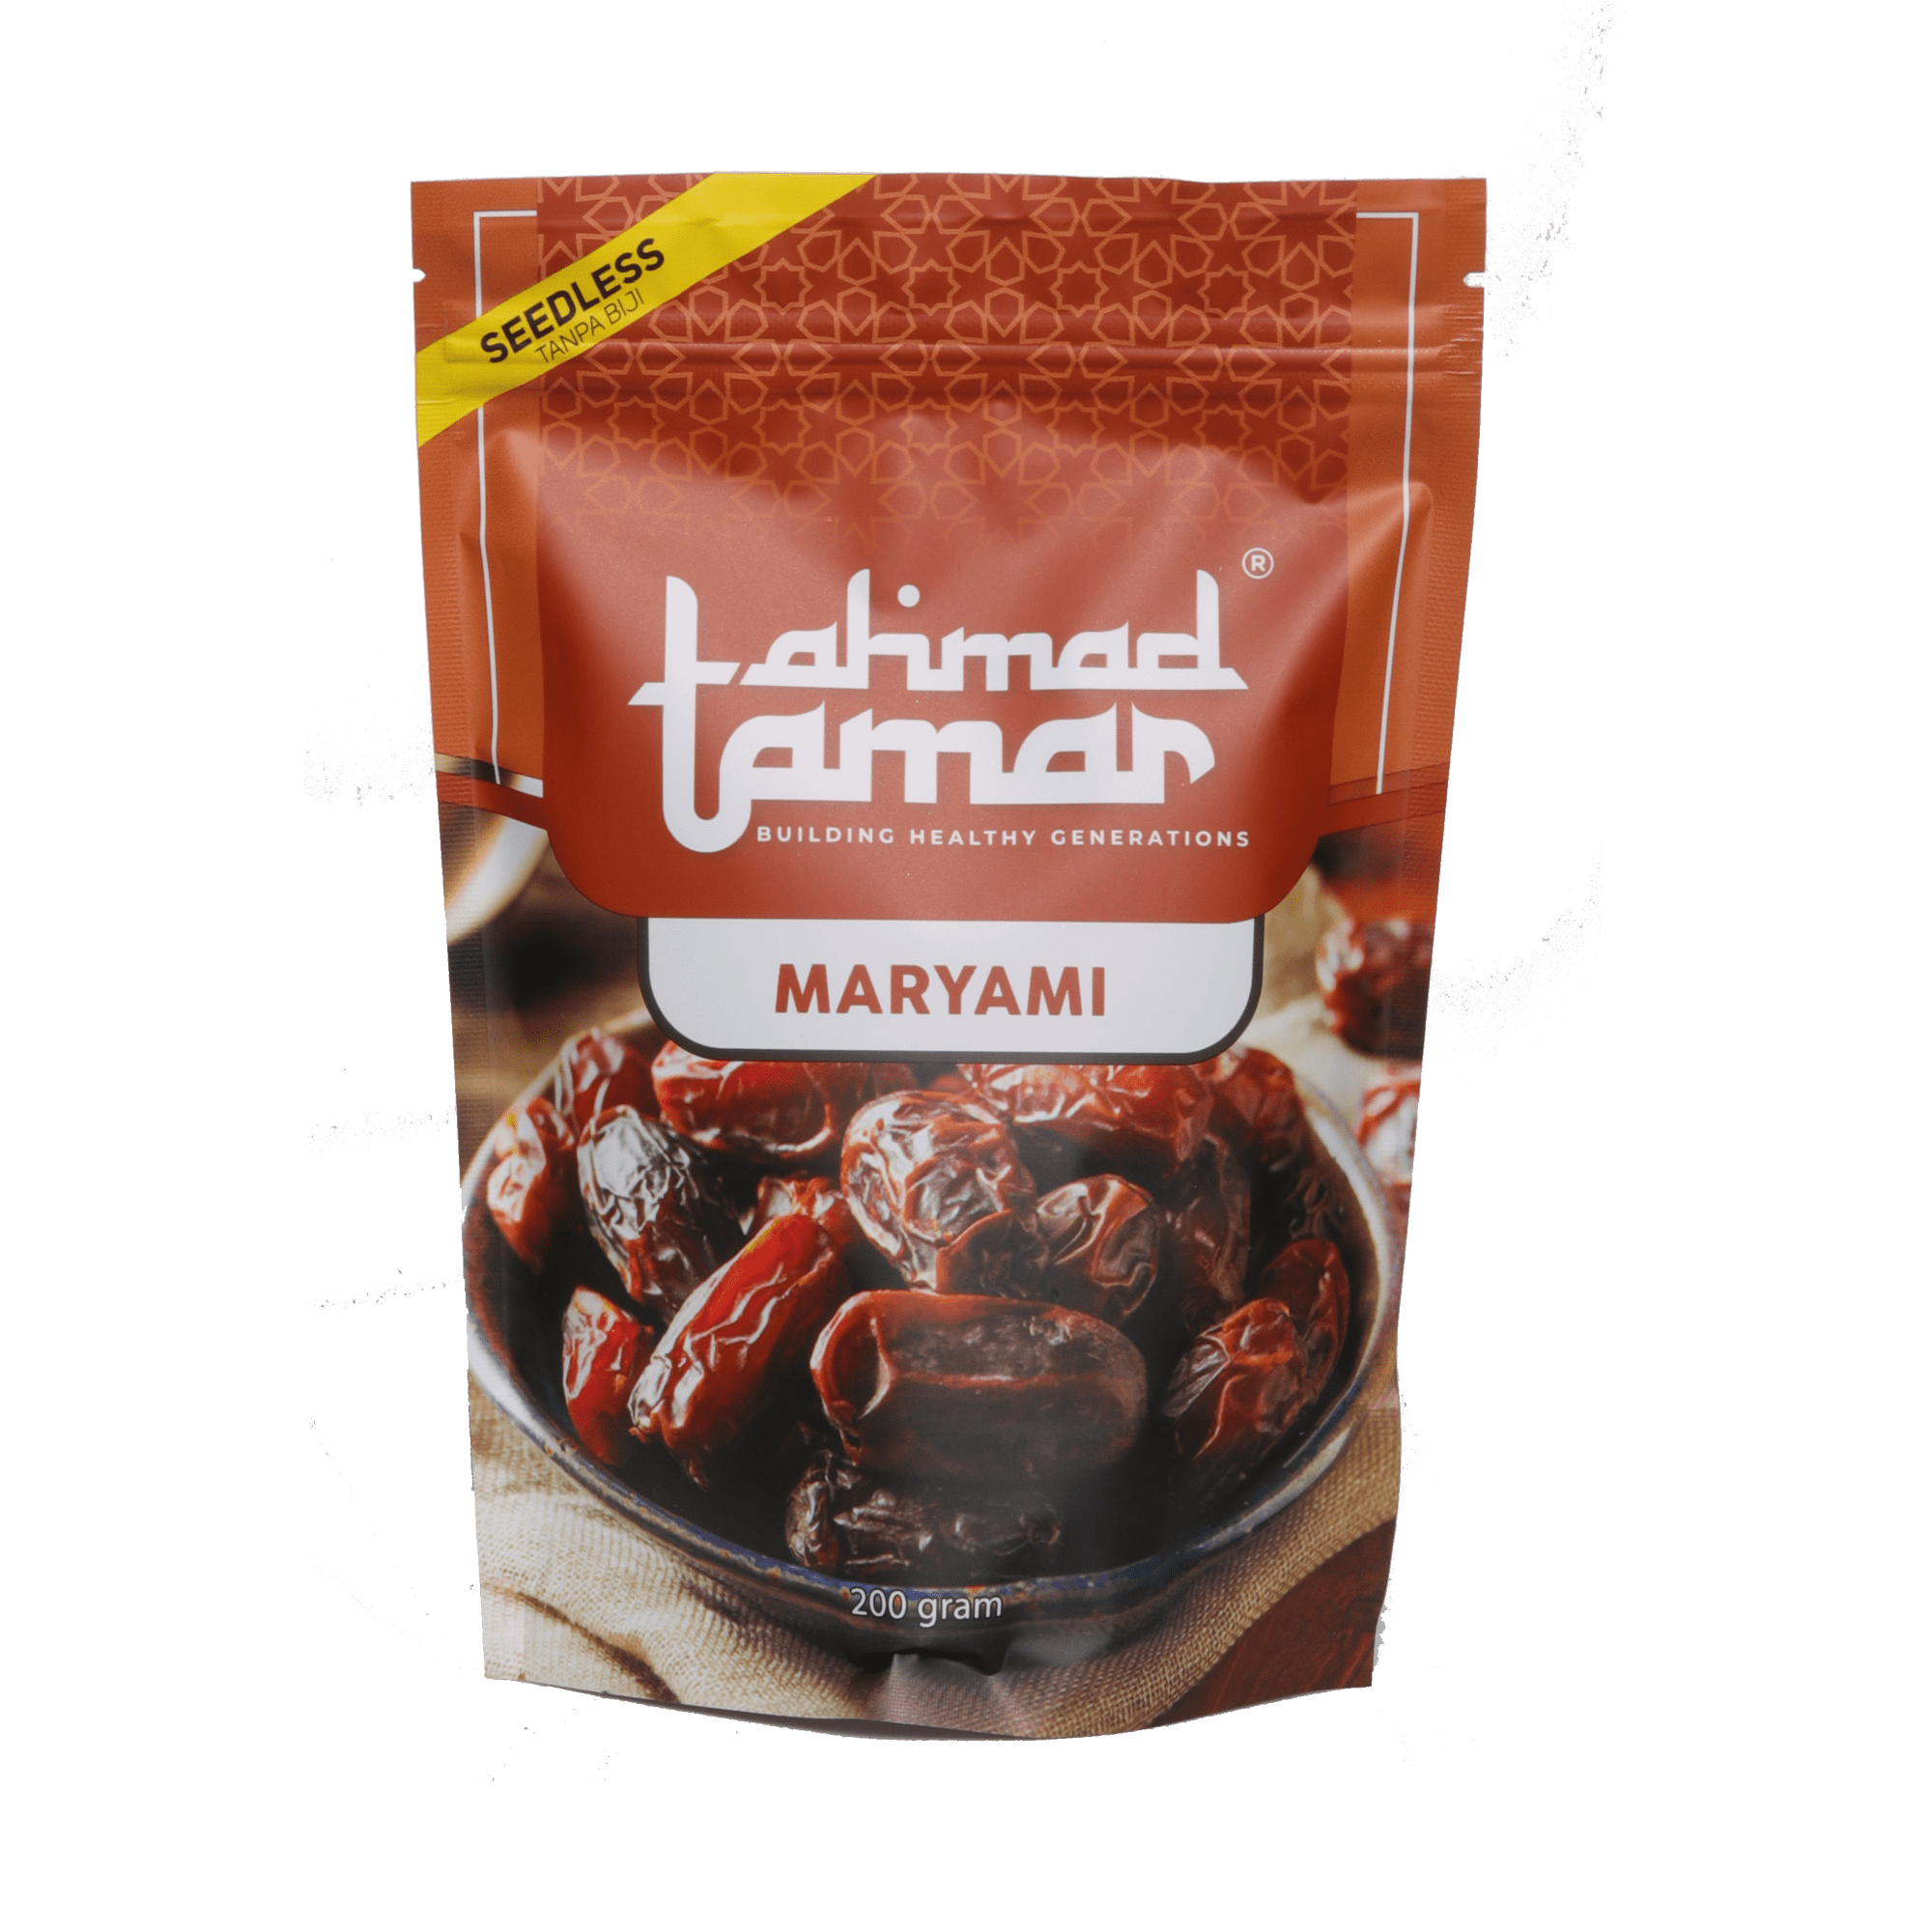 [Ahmad Tamar] Seedless Kurma Maryami